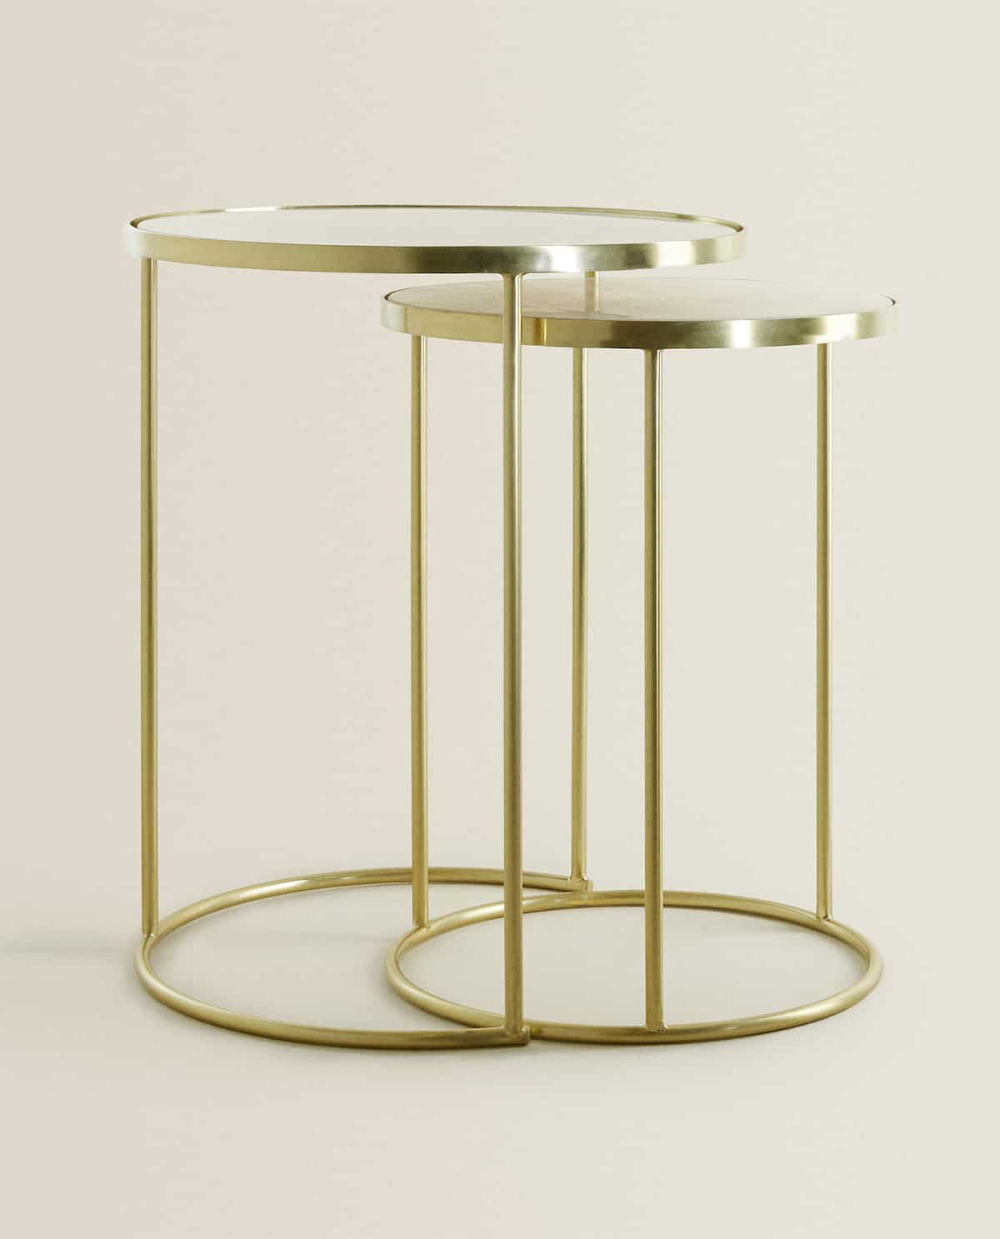 Marmarino Xrysafi Trapezi Zigkon Set Twn 2 In 2020 Gold Side Table Gold Marble Living Room Side Table